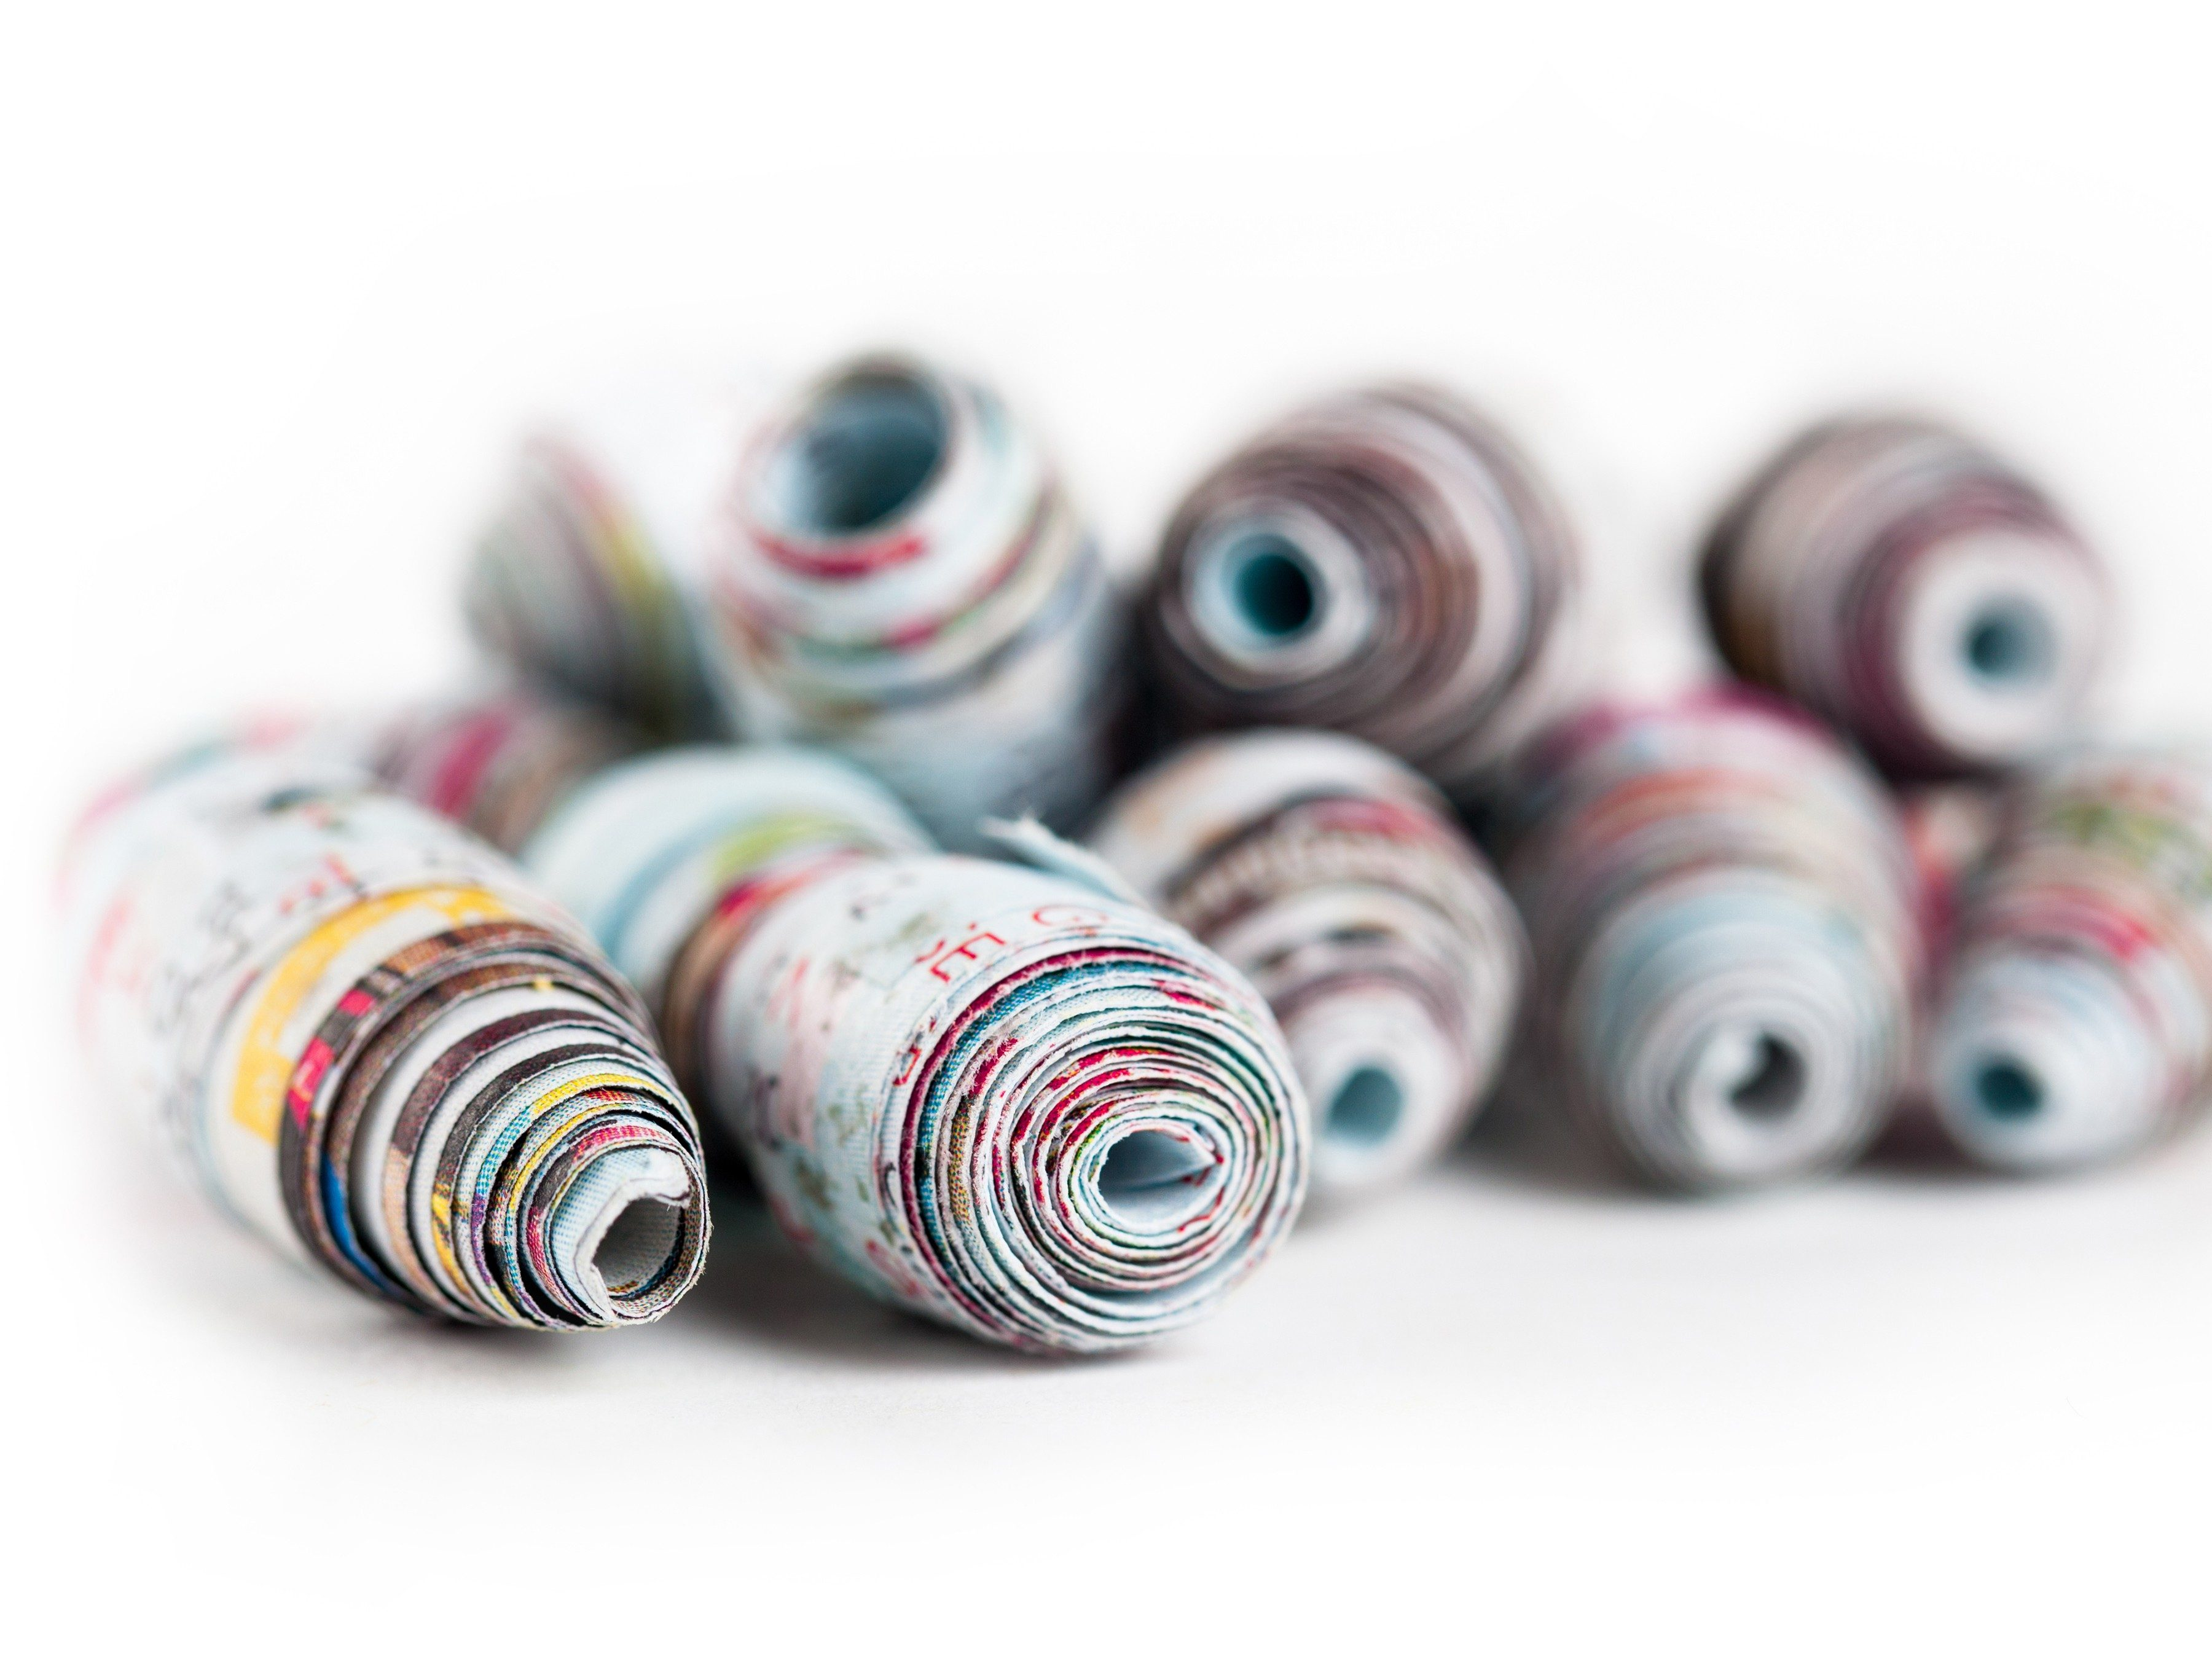 Make paper beads out of old magazines